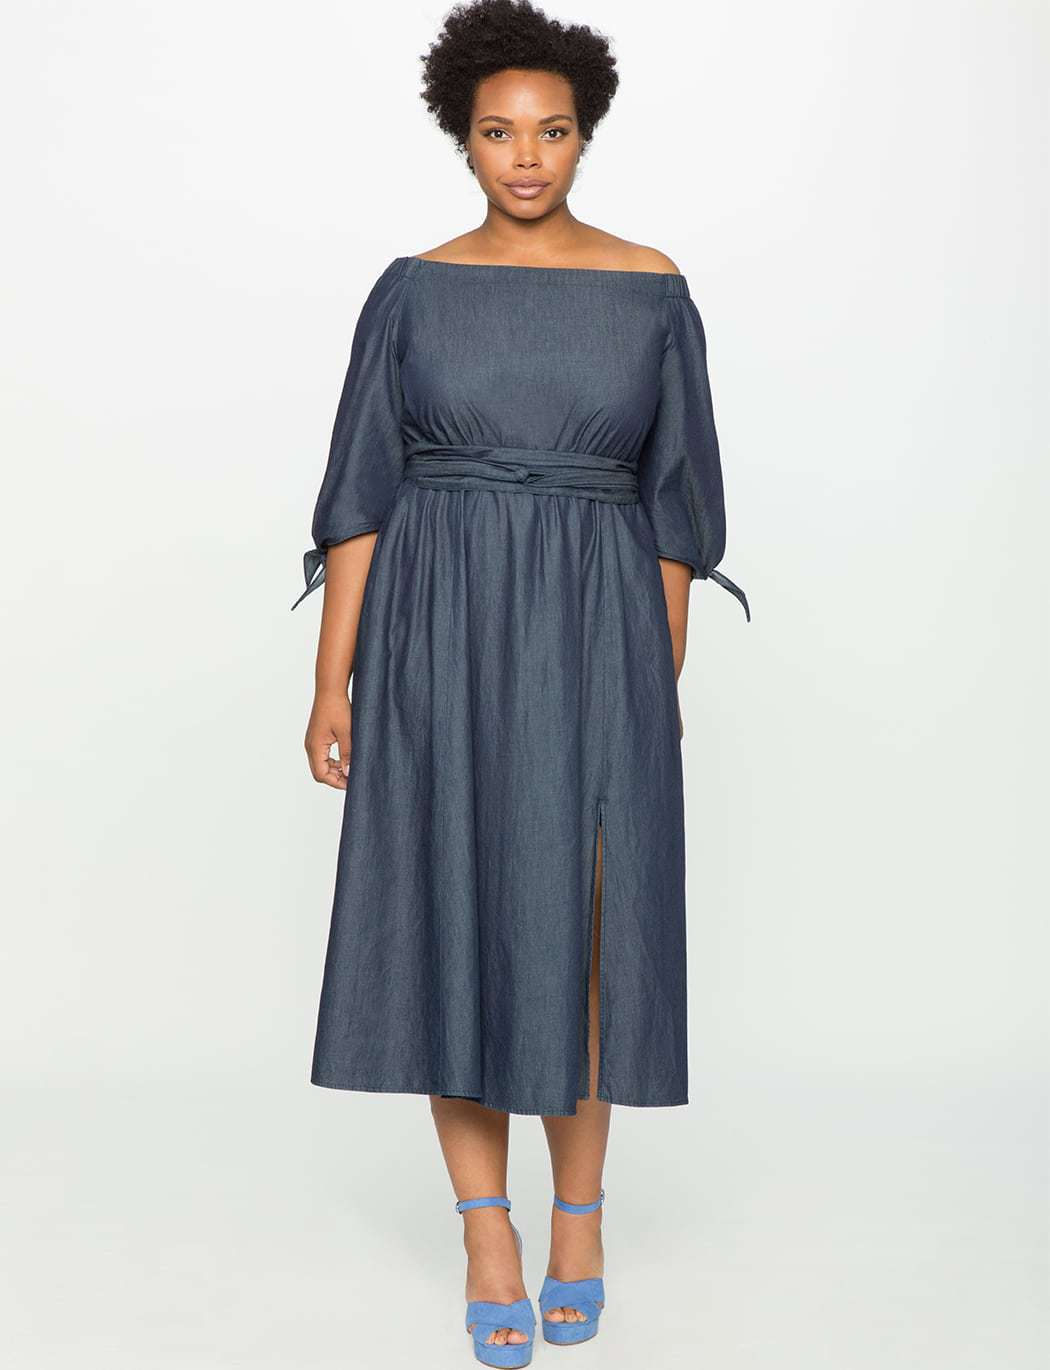 ELOQUII off the shoulder chambray dress